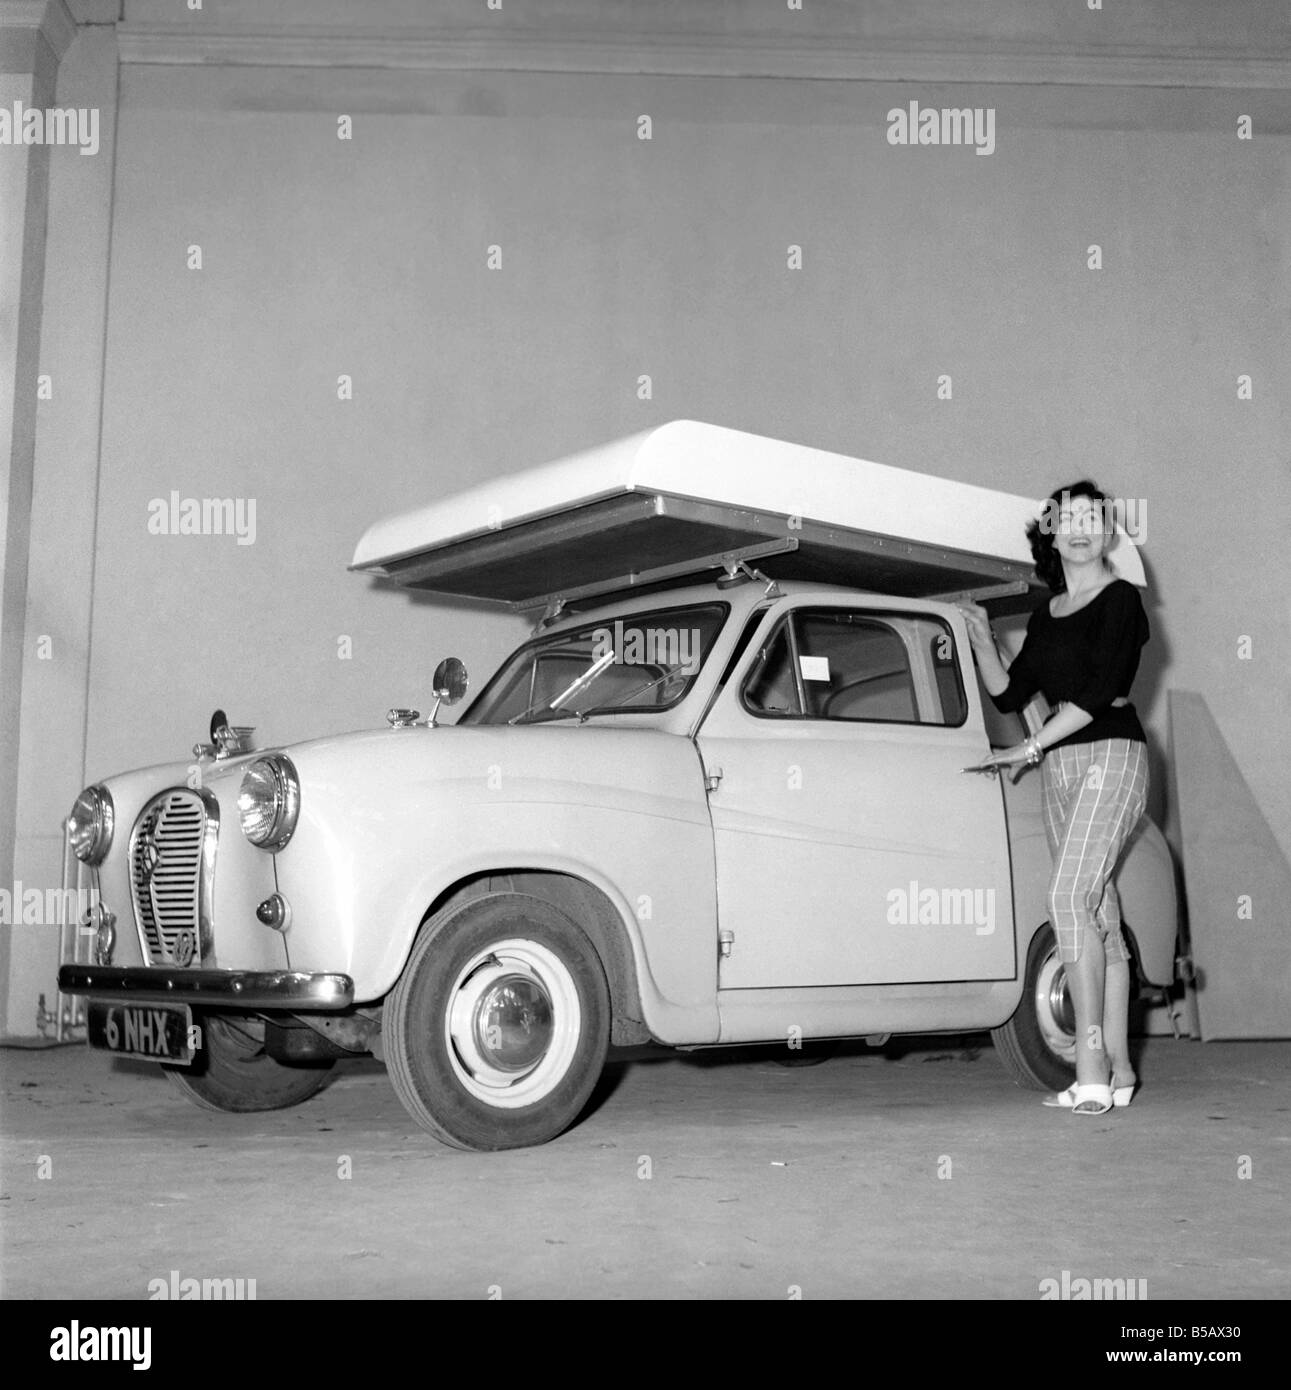 Inventions: Car Roof Tent: A new revolutionary camping invention ...